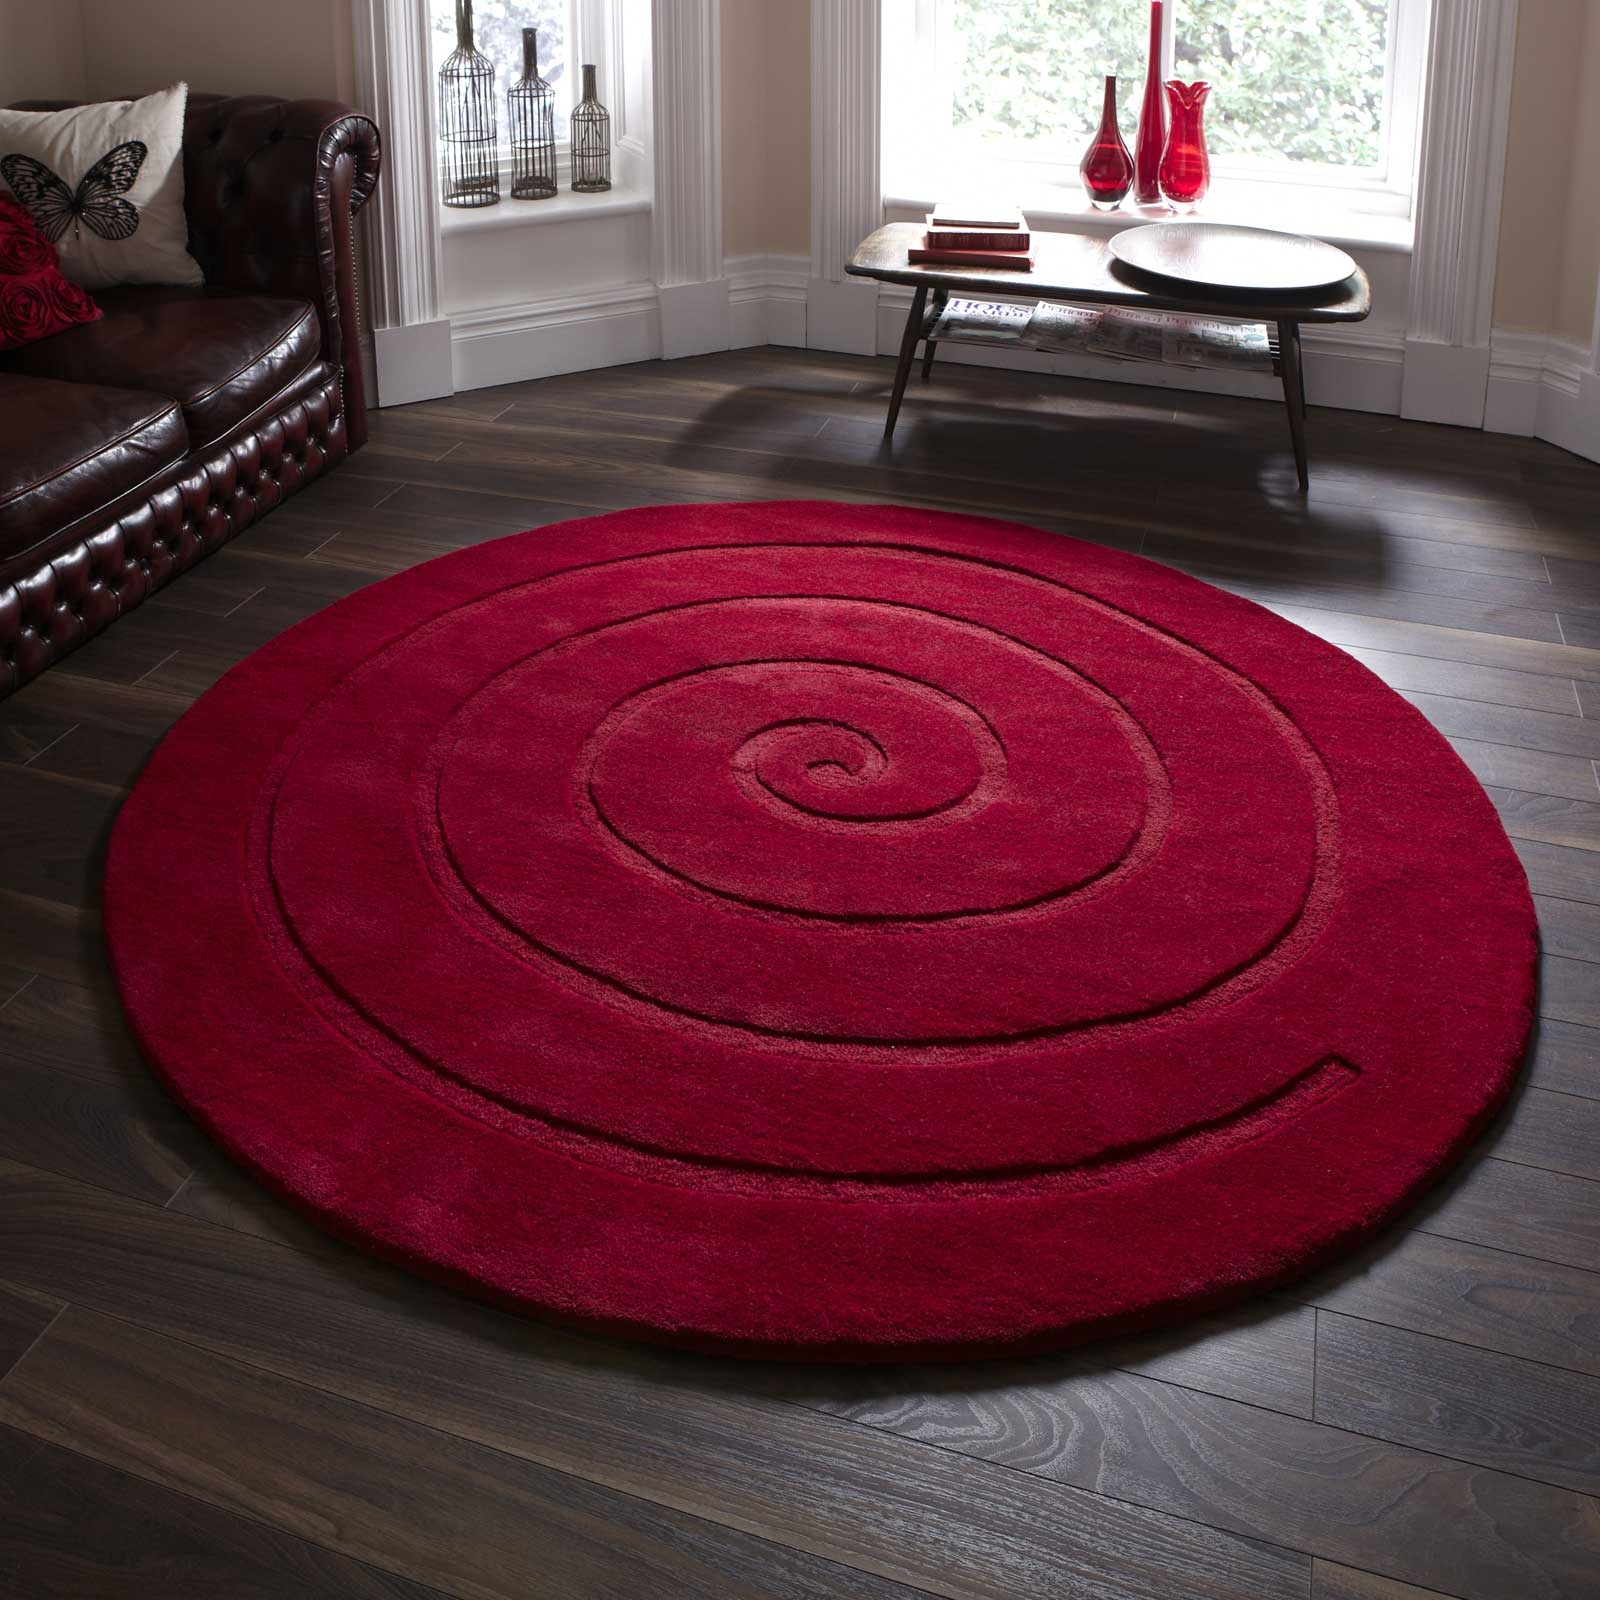 Large Round Rugs Uk Roselawnlutheran With Regard To Circular Rugs (View 14 of 15)